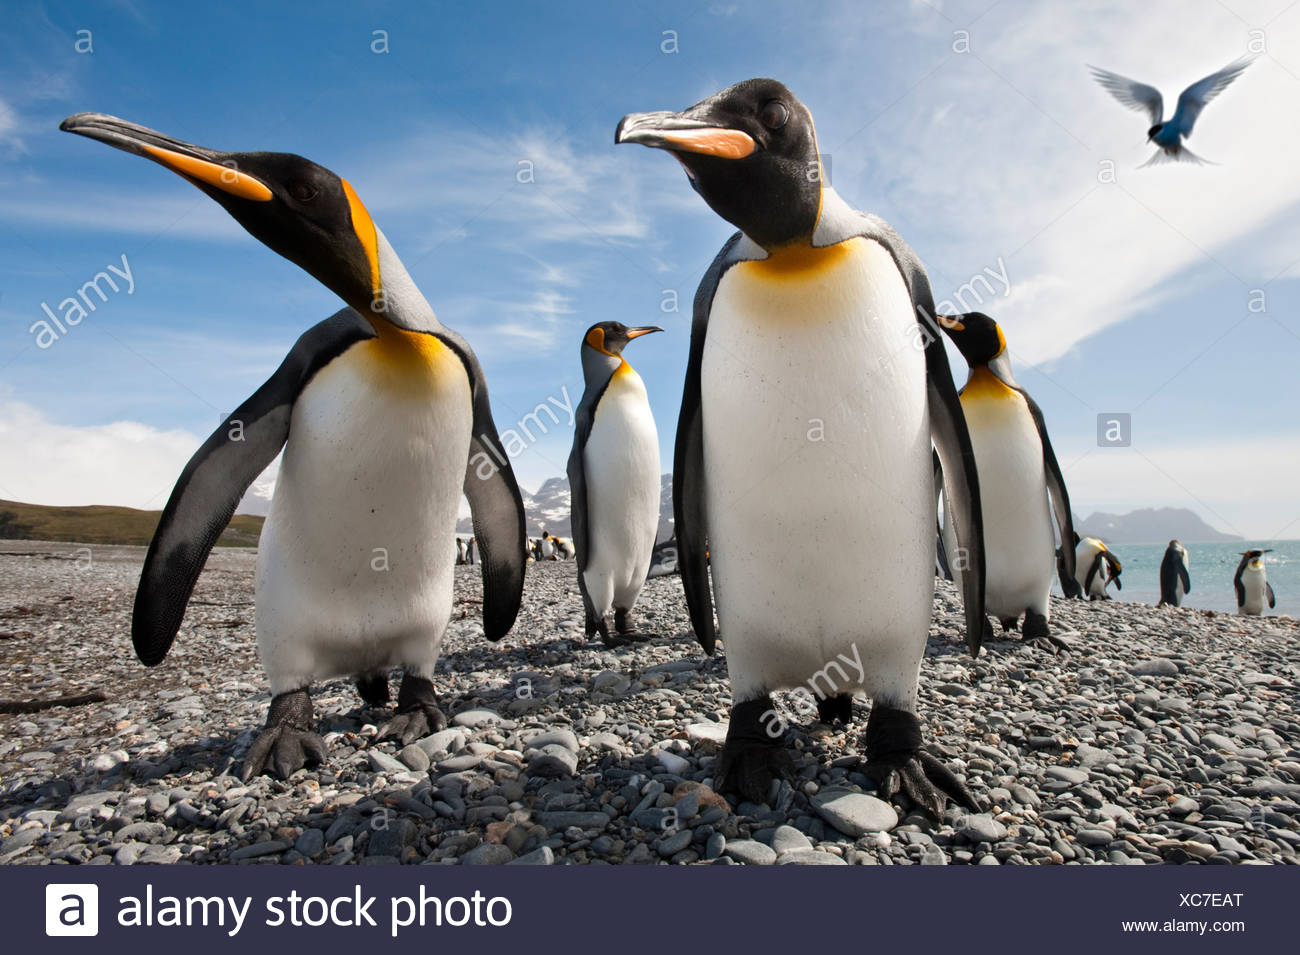 King Penguins on the beach at Salisbury Plain, with Antarctic Tern hovering. South Georgia, South Atlantic. - Stock Image